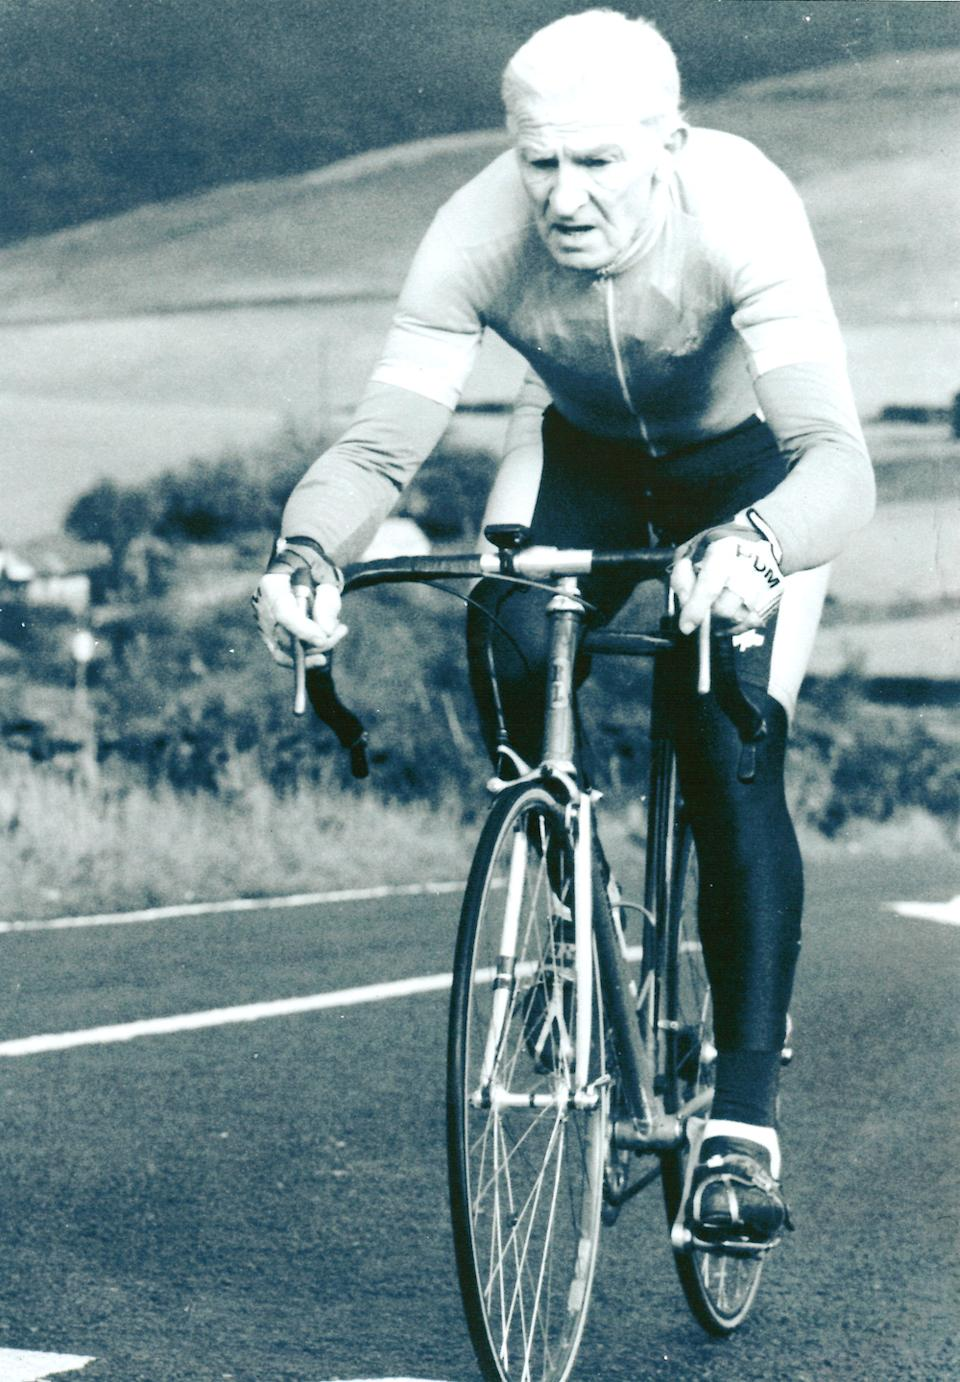 Ron Longstaff riding in Derbyshire - unknown date. See SWNS copy SWLECYCLE: Britain's oldest cyclist still clocks up a staggering 150 miles per week after pushing the pedals for more than 70 years and has no plans to stop - at the grand age of 93. Sprightly grandad Ron Longstaff has cycled more than a million miles since being bought his first lightweight racing bike by his father in 1946. The pedal-powered pensioner, who has a collection of 11 bikes, still gets out on the road three times a week and has no intention of hitting the brakes just yet.